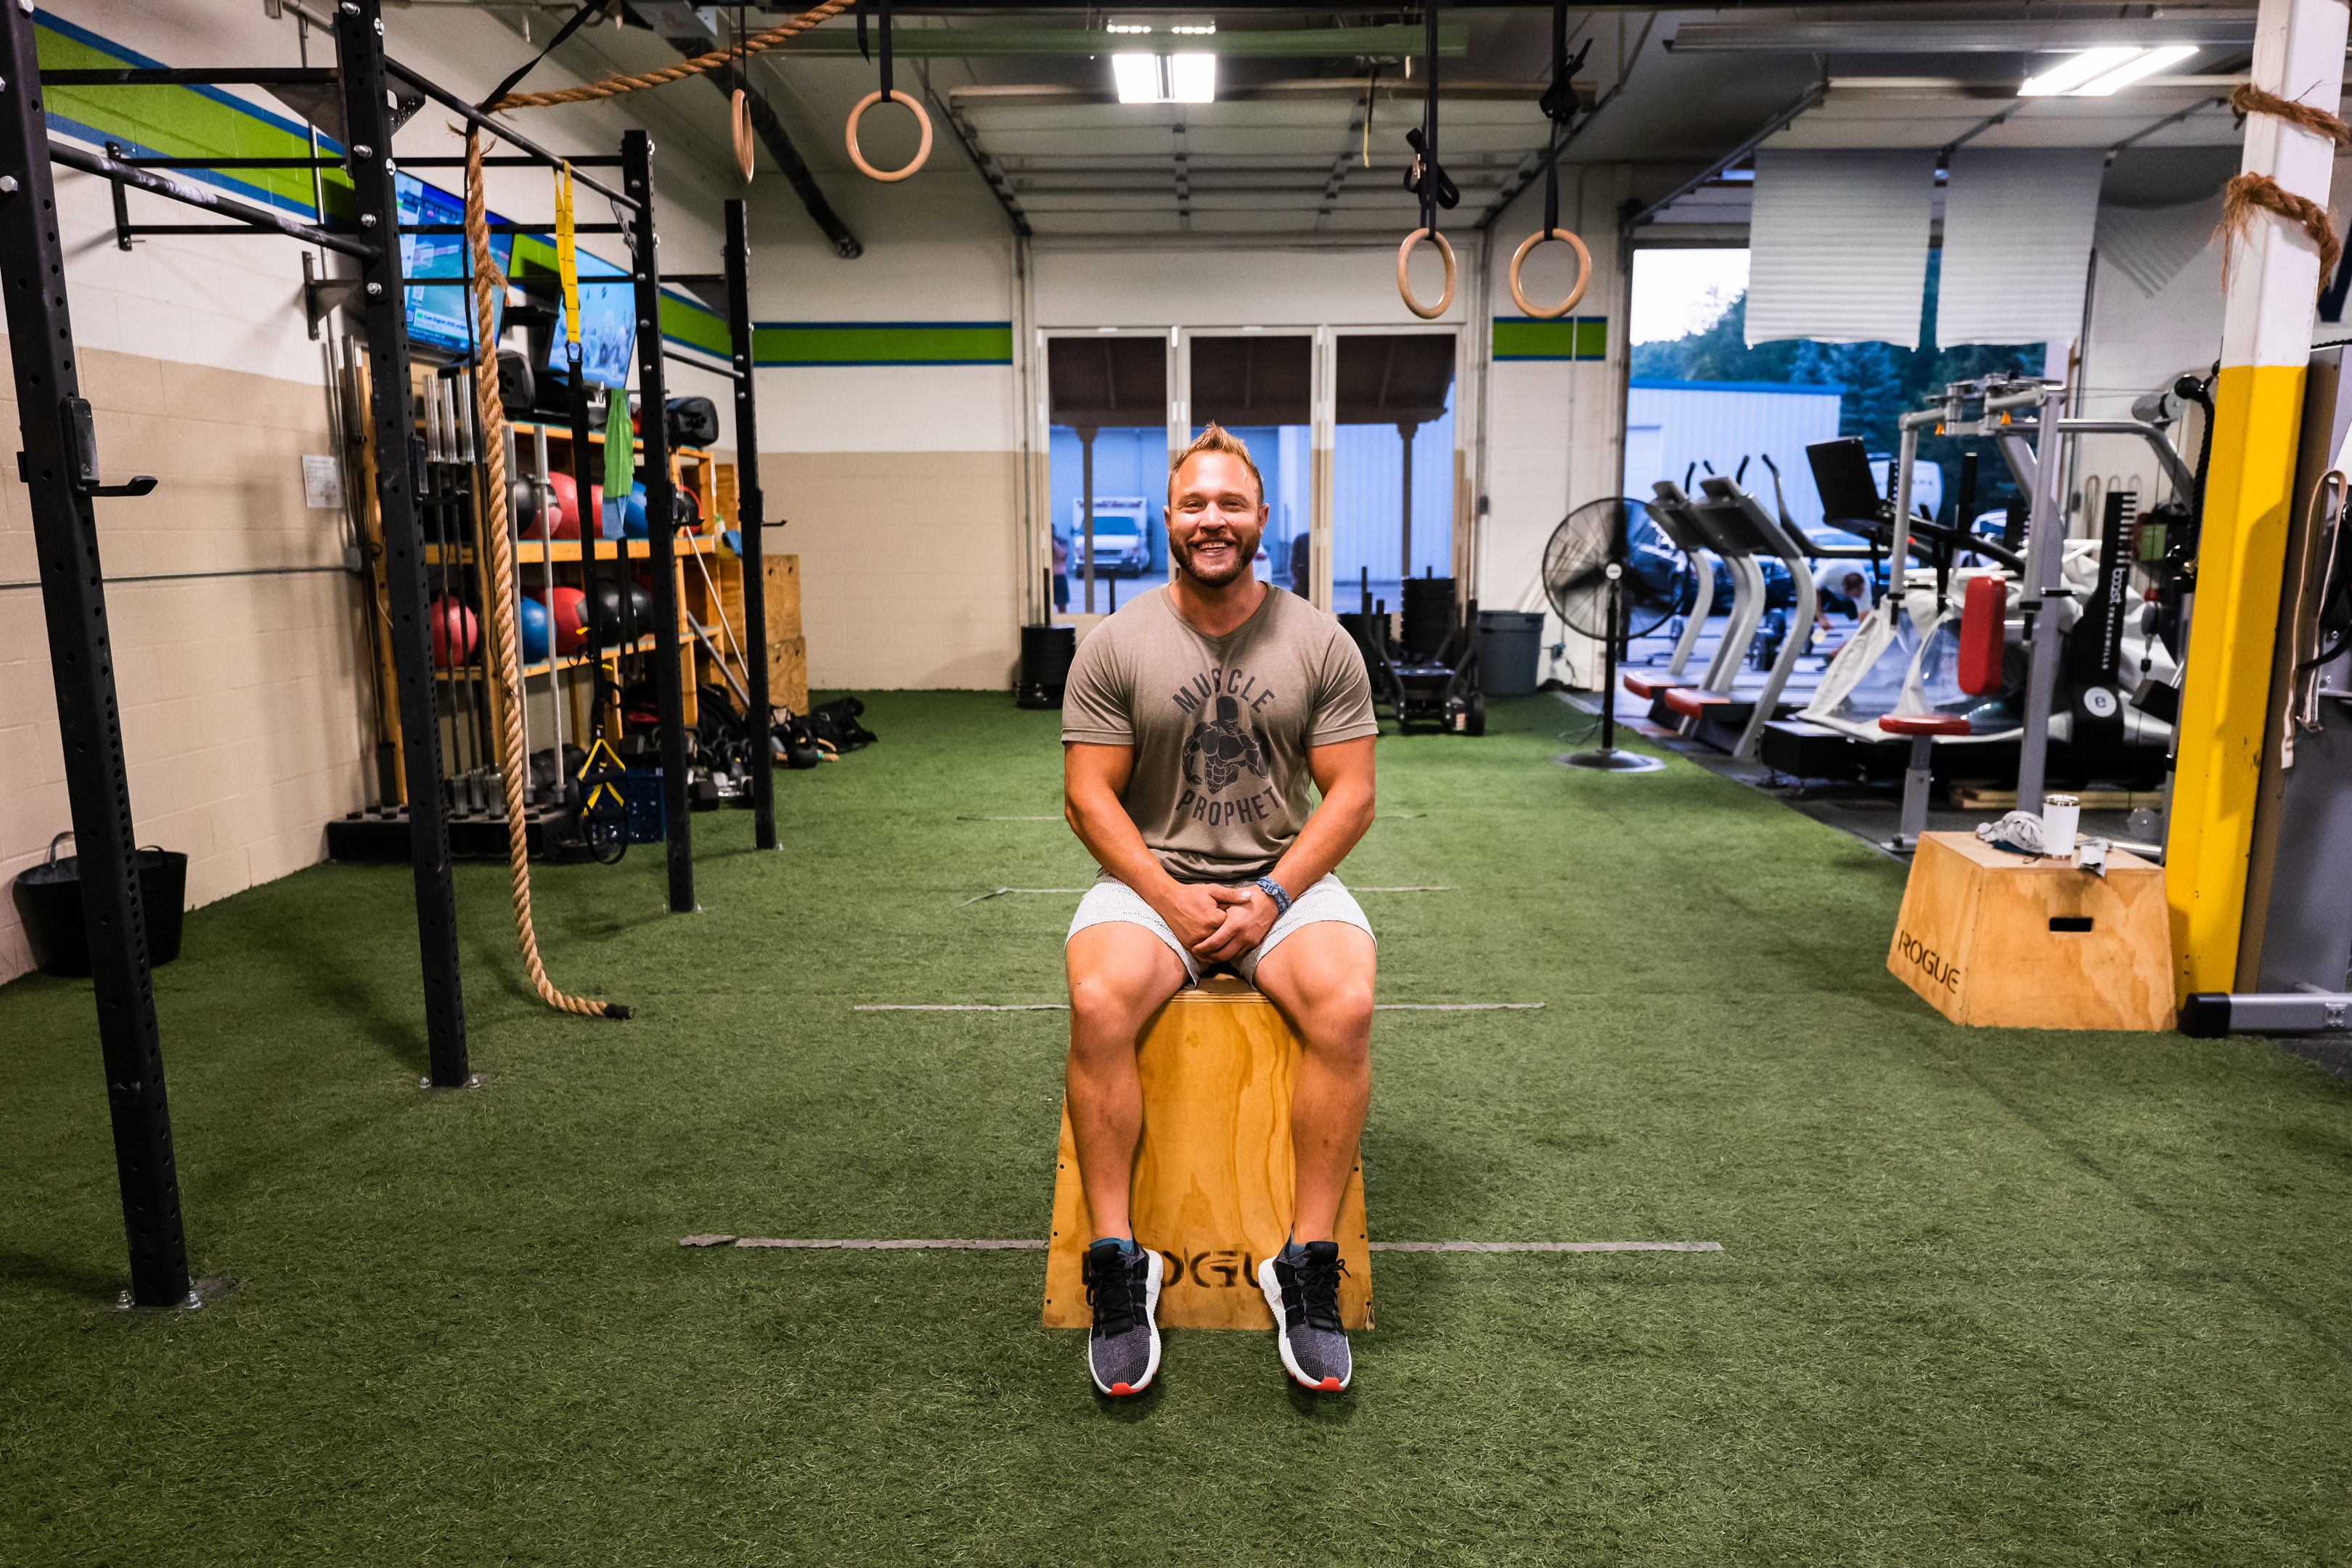 Mark Dominique is the owner and a personal trainer at Prevail Grand Rapids located in Ada, Michigan.